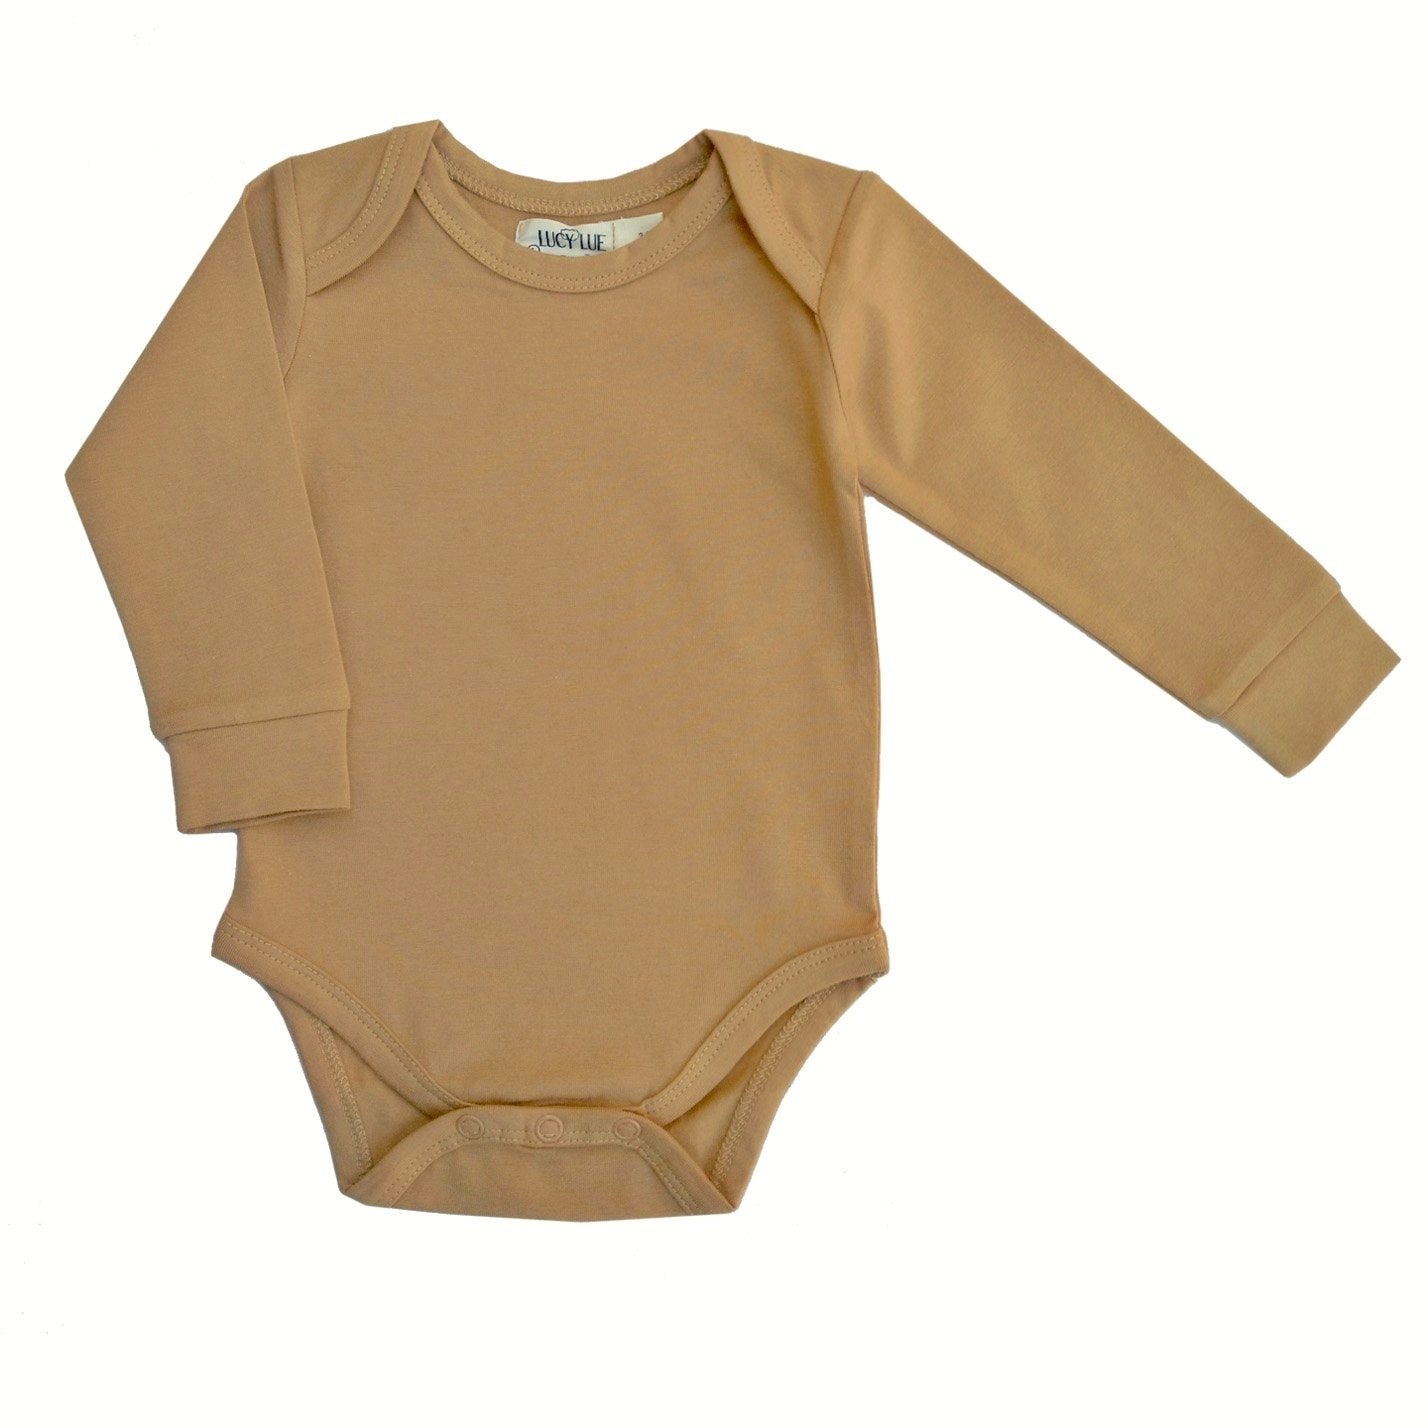 Lucy Lue Organics baby bodysuit. Organic newborn clothes. Baby clothing. Gender neutral newborn clothes. Baby romper. Organic baby bodysuits. modern organic baby clothes. newborn clothes. sustainable baby clothes.  Soft baby clothes. solid color baby clothes